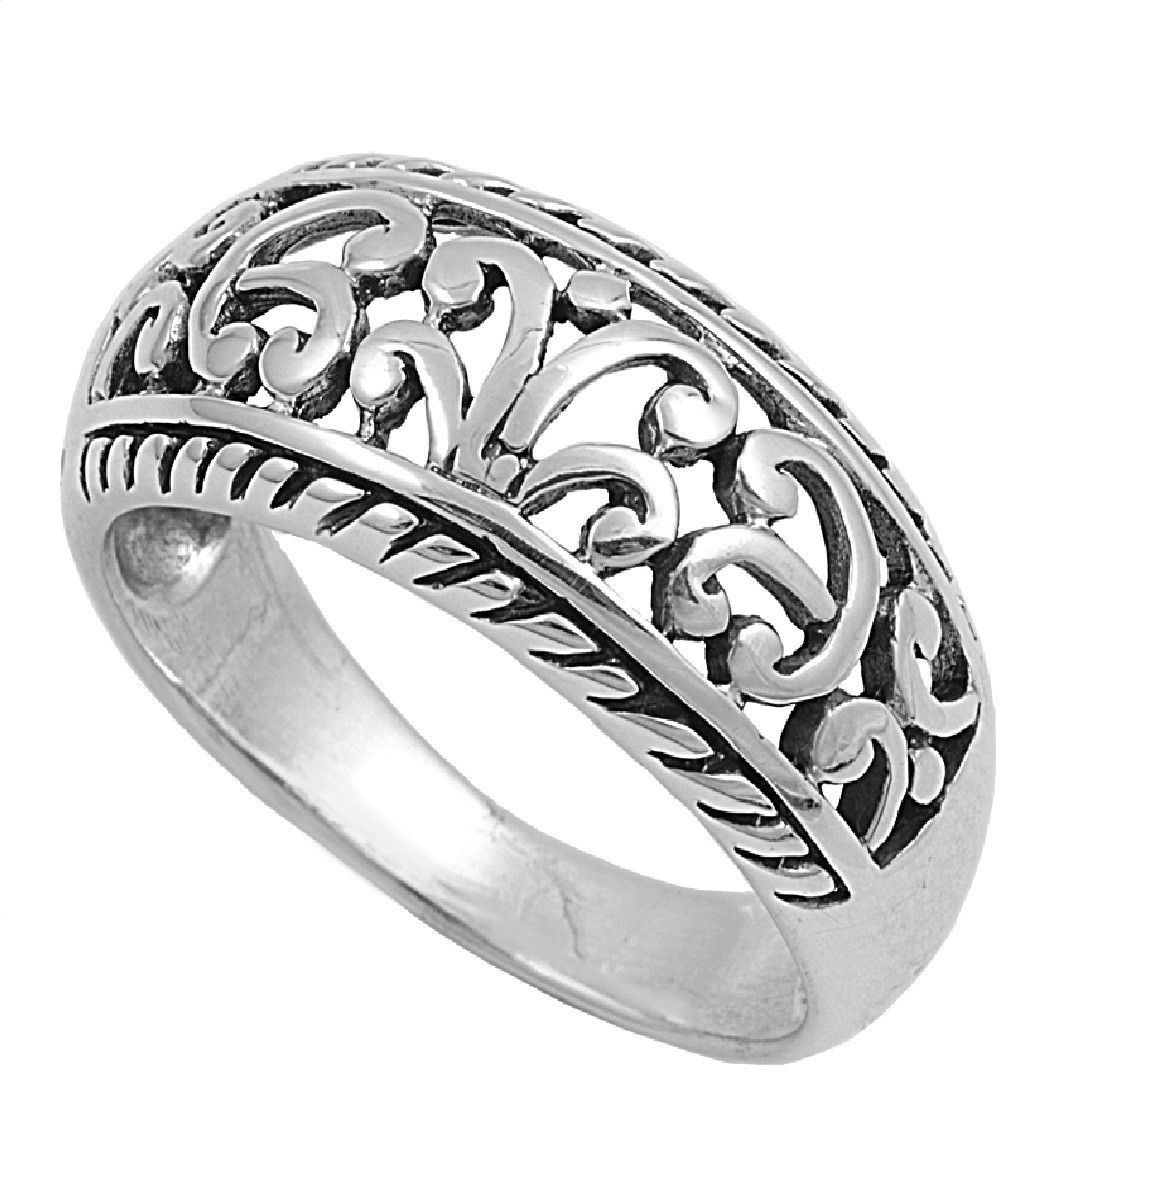 925 Sterling Silver Braided Edges Filigree Abstractionism Ring